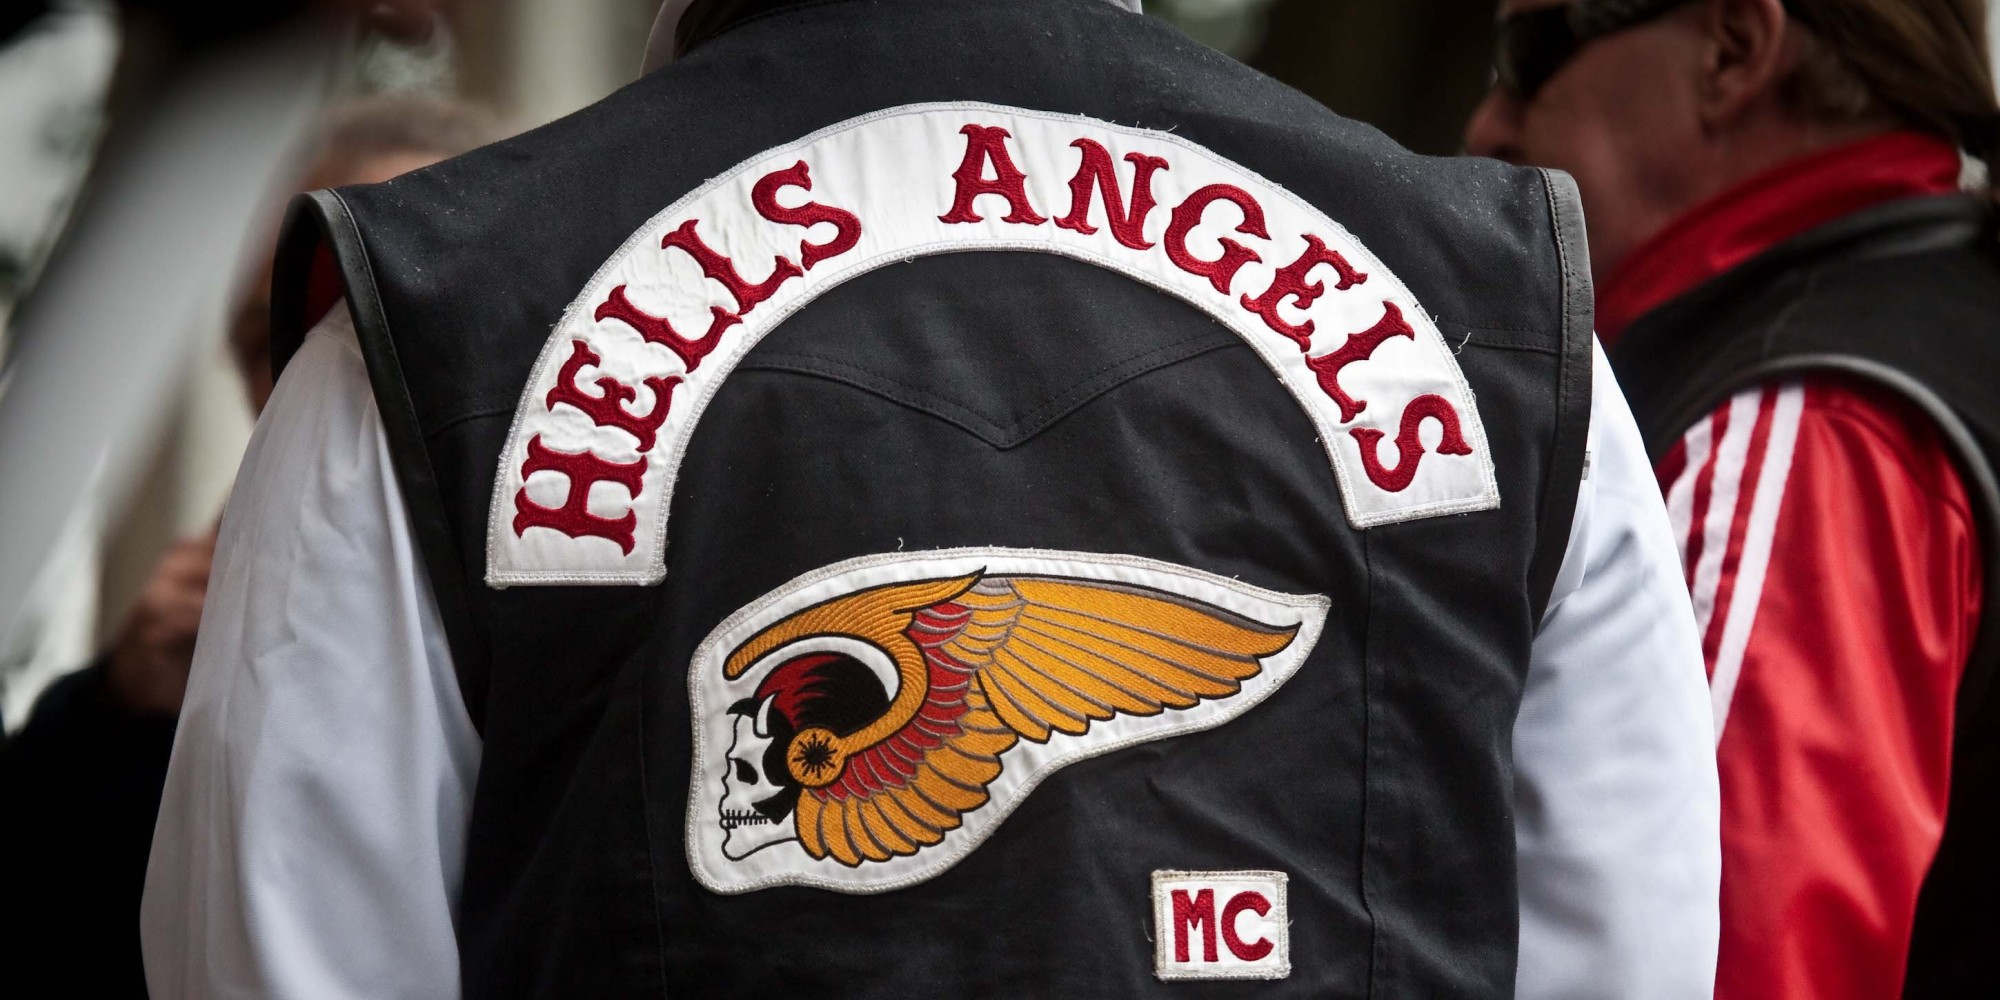 Hells Angels Backgrounds, Compatible - PC, Mobile, Gadgets| 2000x1000 px